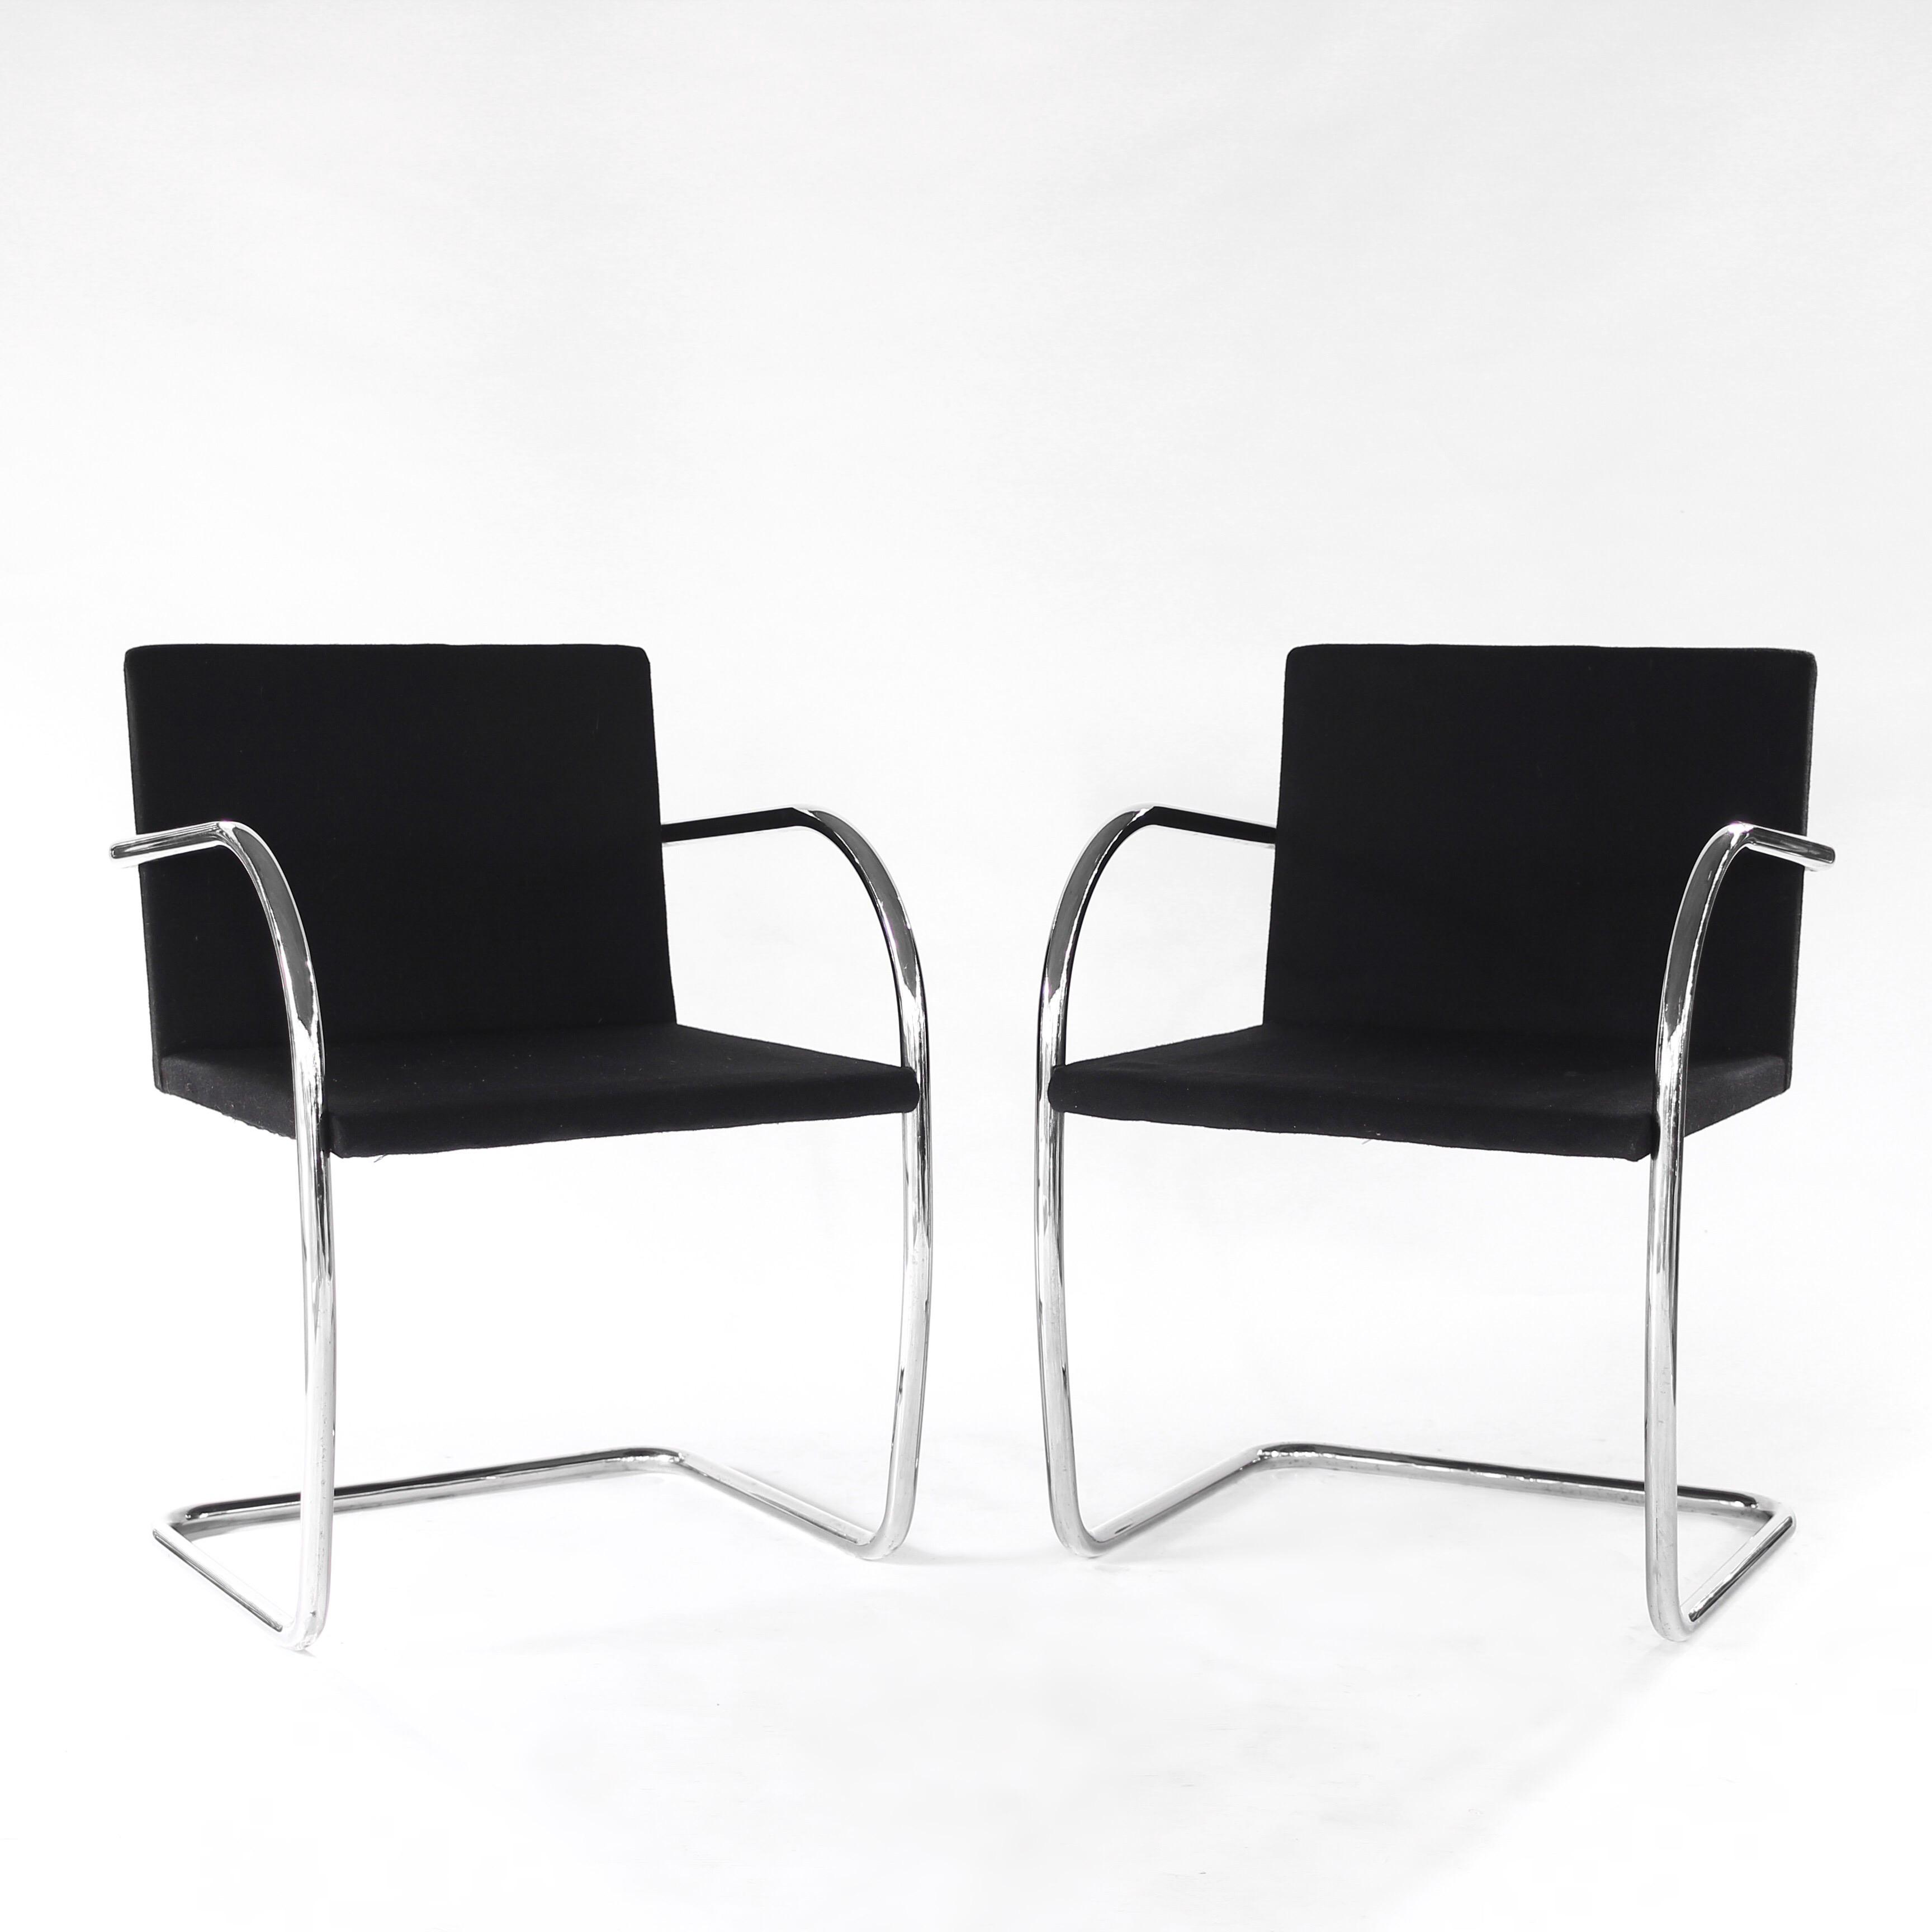 Presenting This Lovely Pair Of Brno Chairs By Mies Van Der Rohe For Knoll.  Bring